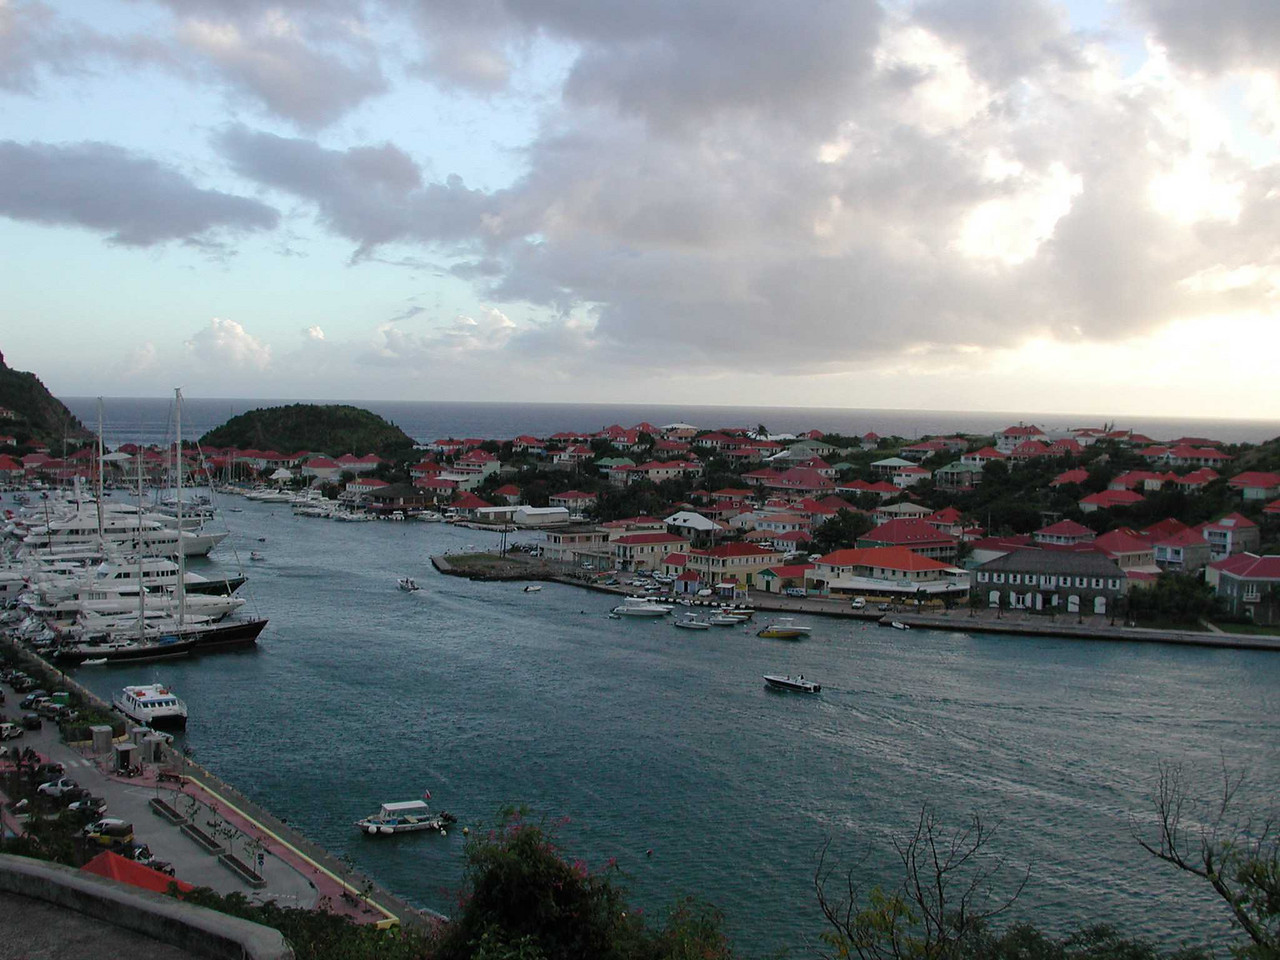 A view of the Gustavia Harbor from the lighthouse